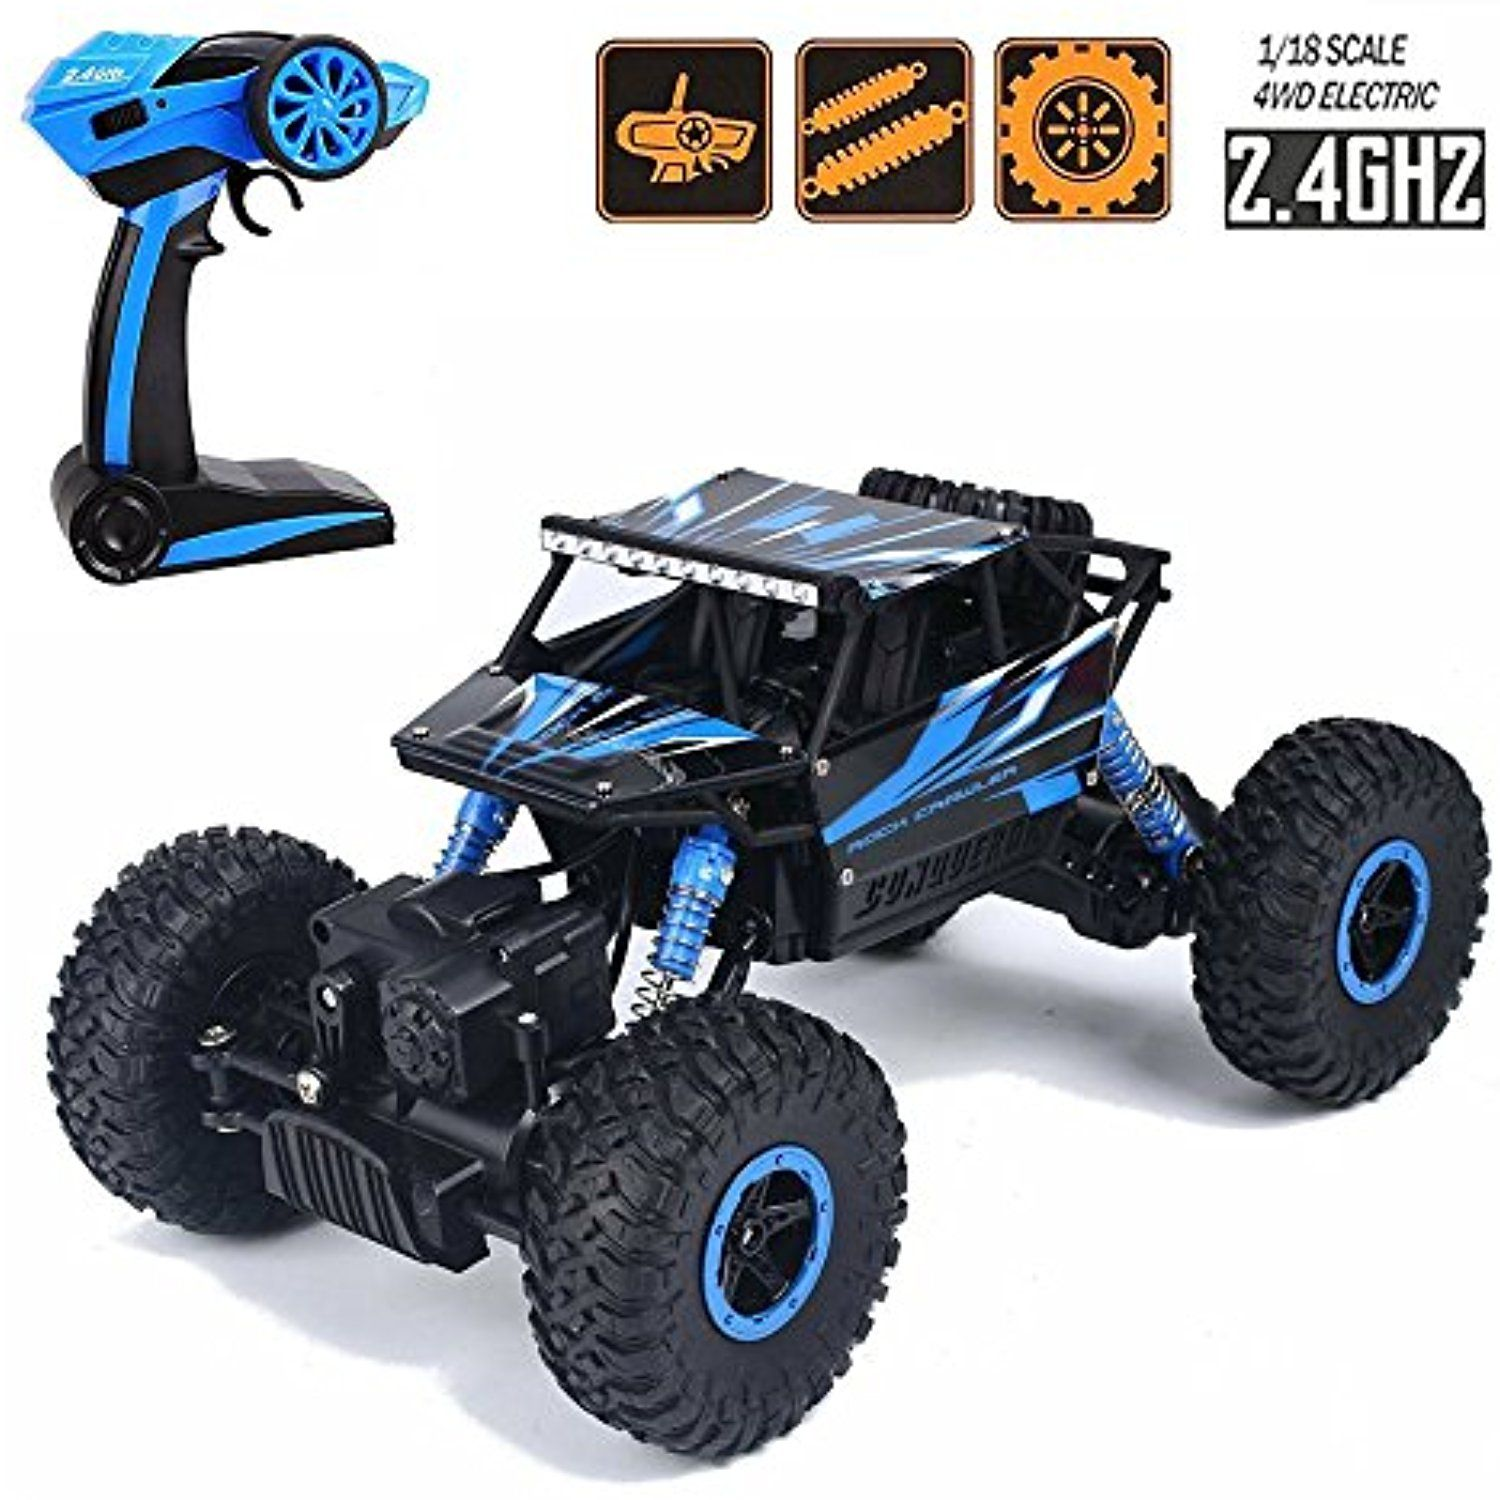 Top Trending Kids Toys, Games And Fashion On Amazon. Hot